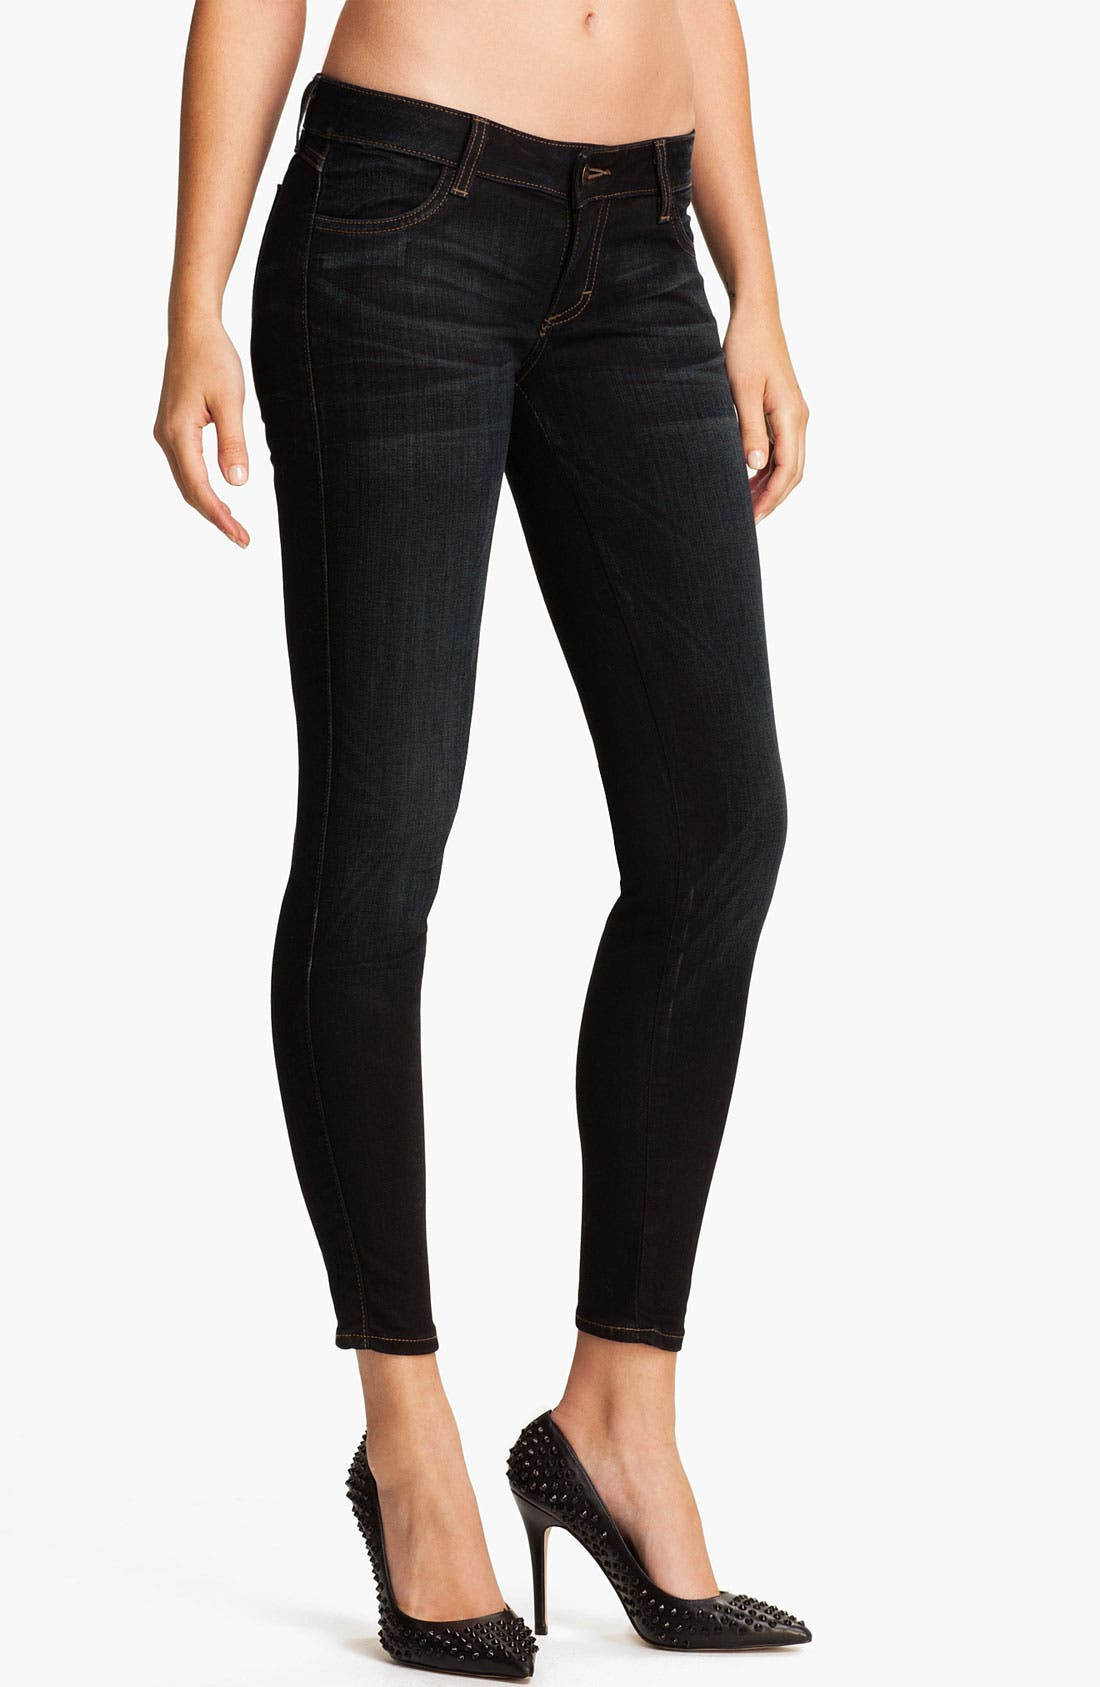 Alternate Image 1 Selected - Siwy 'Hannah' Slim Crop Stretch Jeans (Ride)